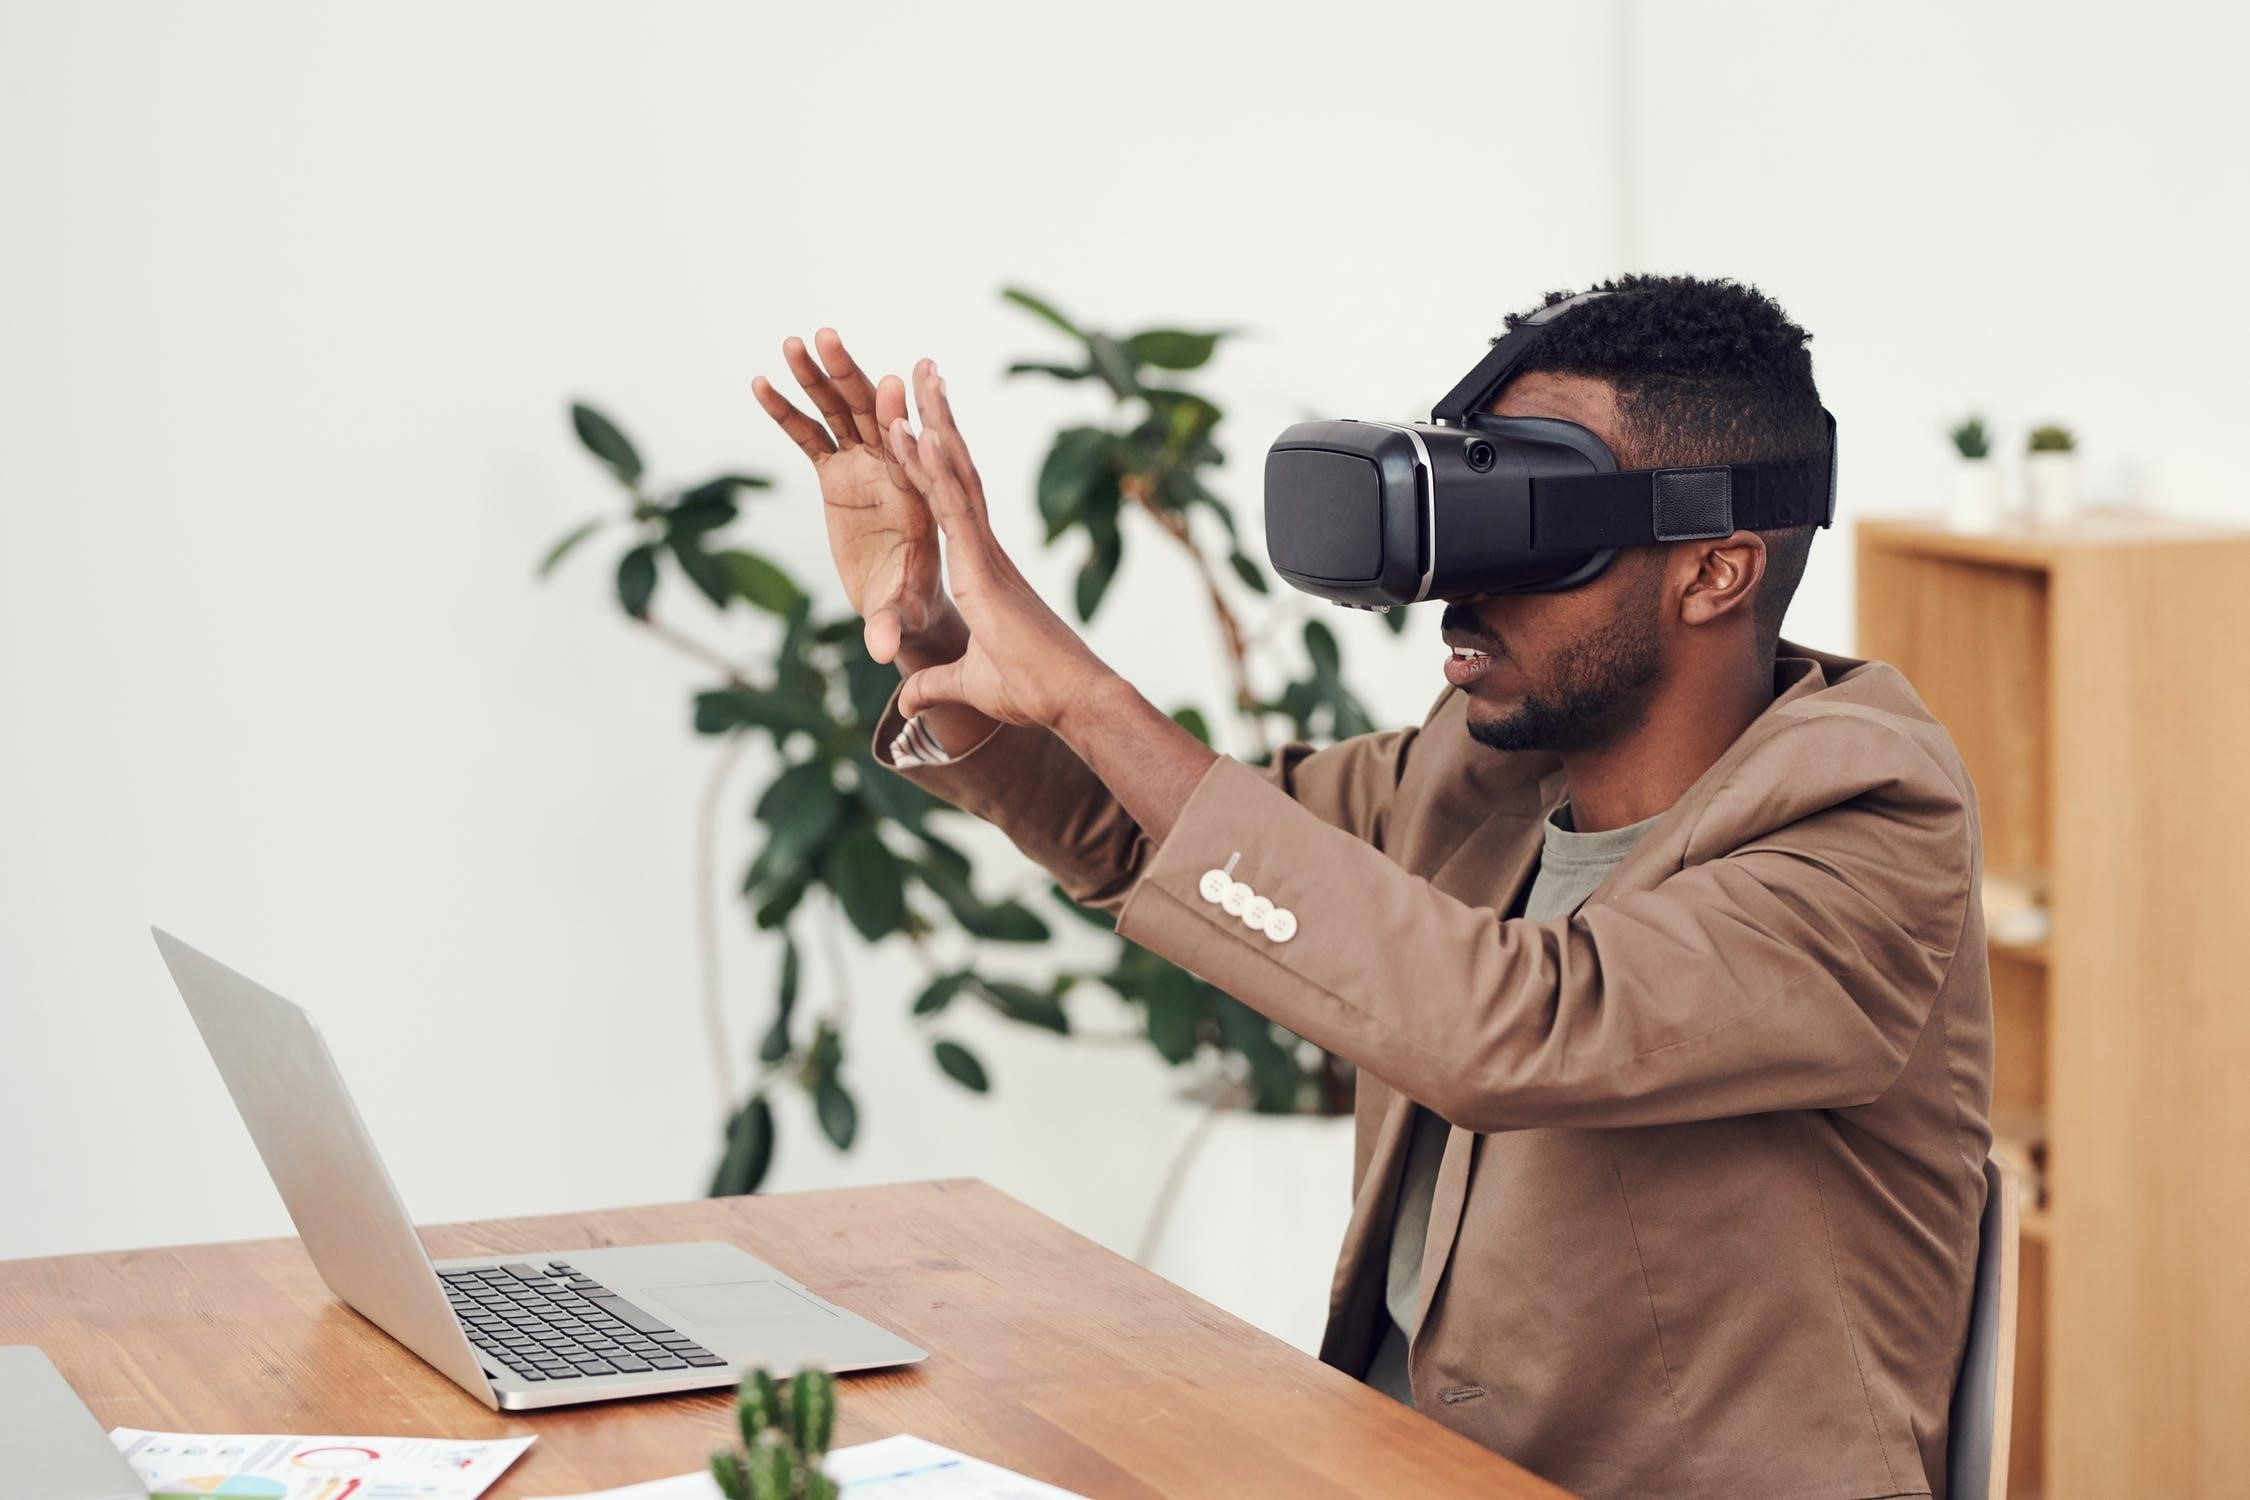 How You Can Leverage Augmented and Virtual Reality (AR and VR) to Provide Functional Opportunities in B2B